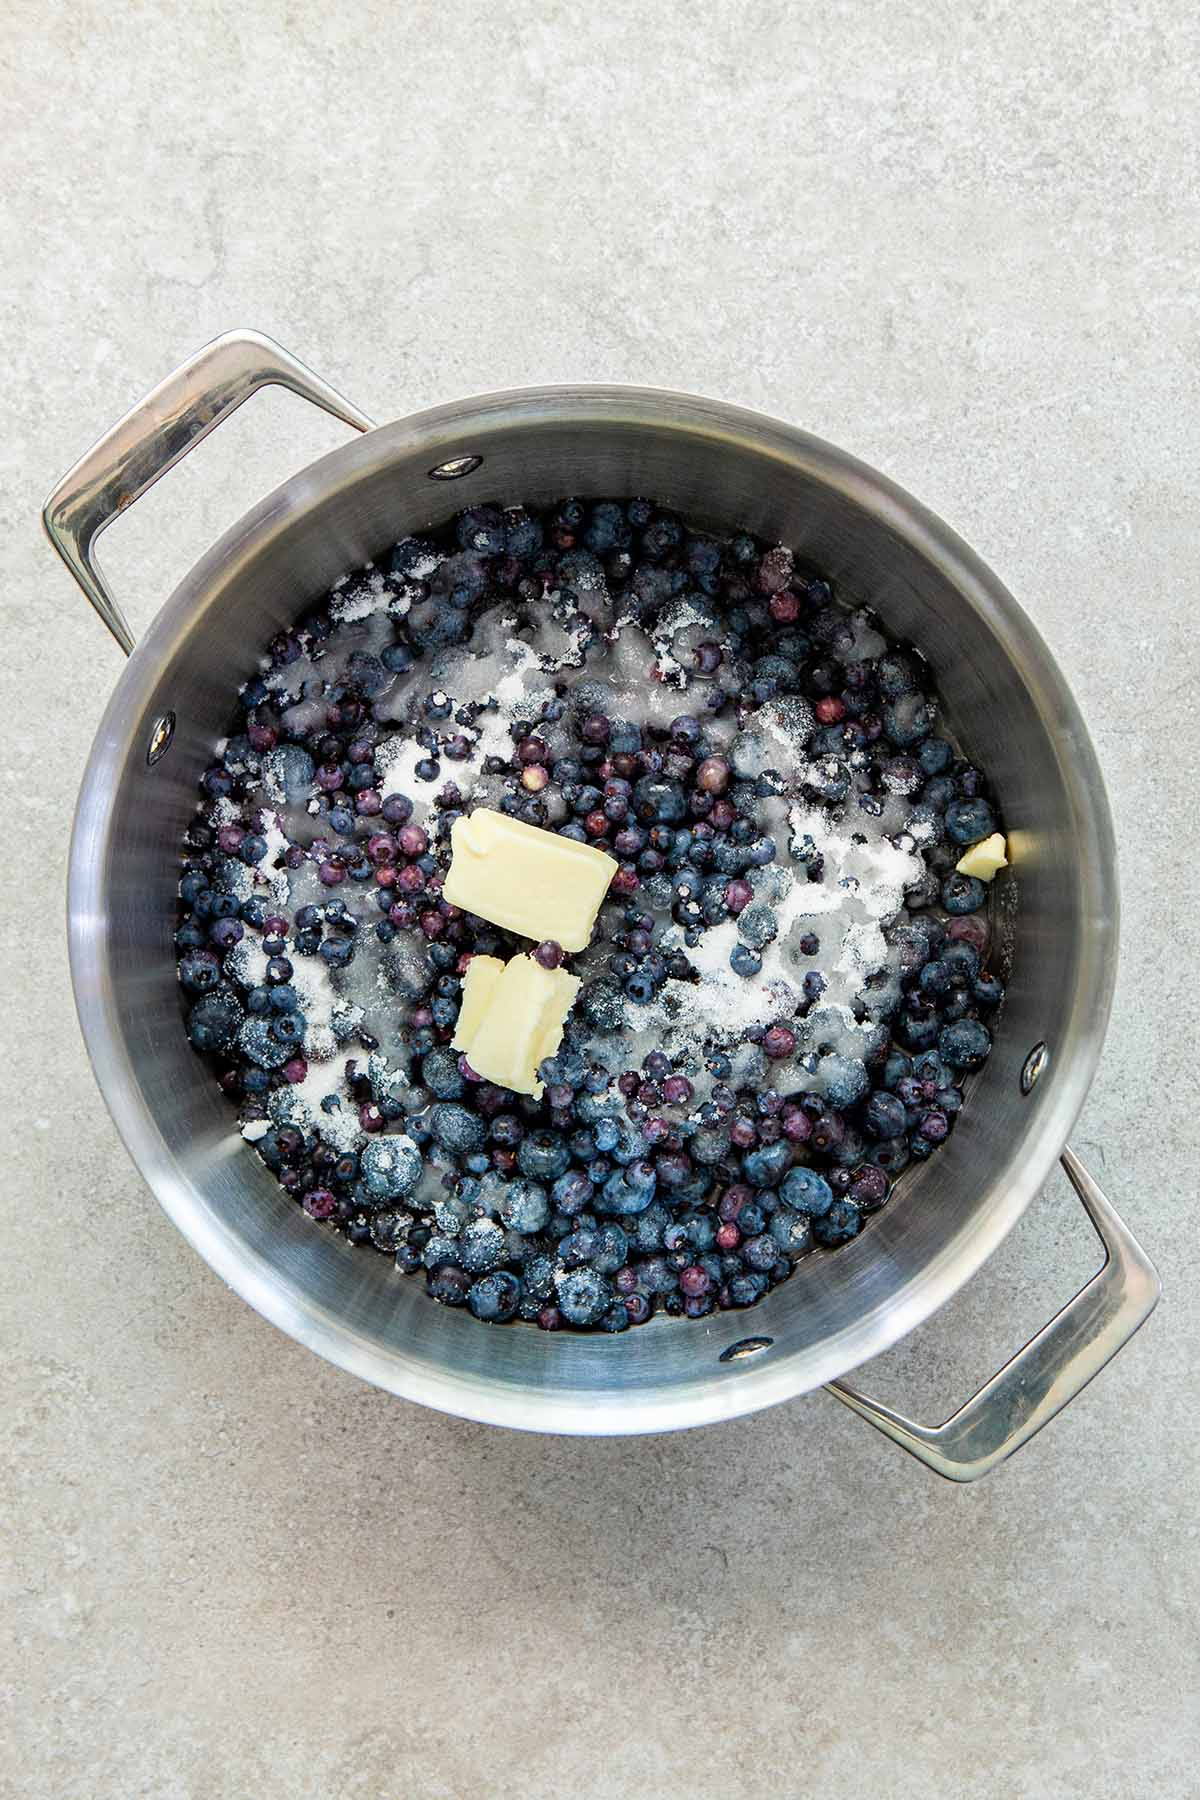 A silver pot with handles with wild blueberries, sugar, water, and chunks of butter inside.